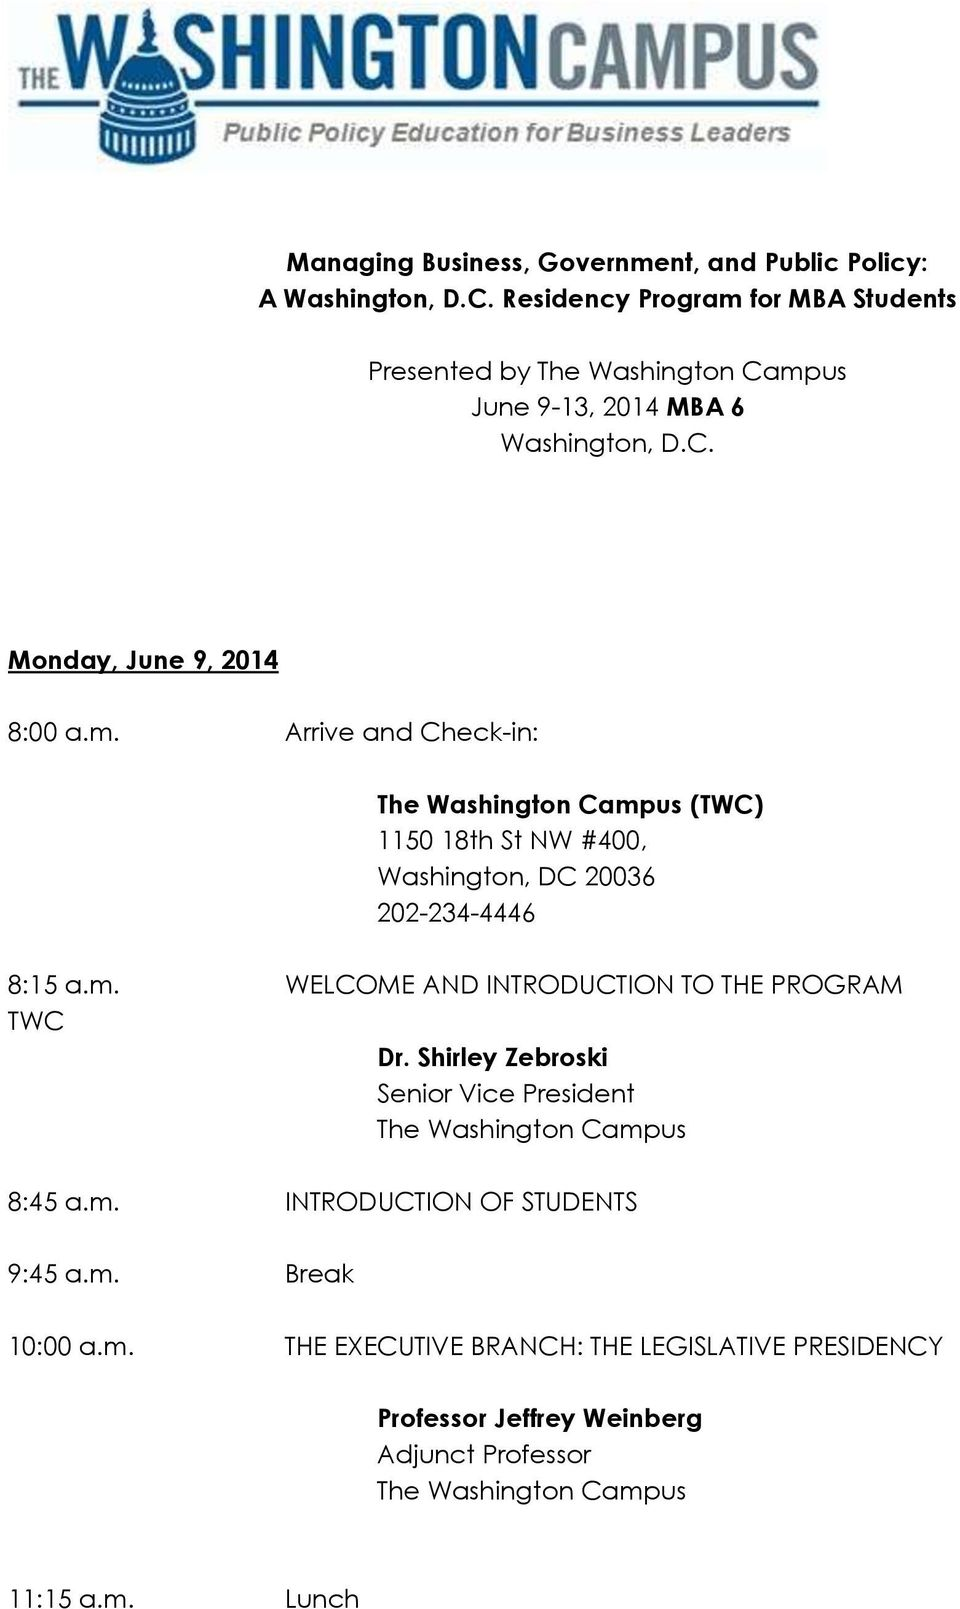 m. WELCOME AND INTRODUCTION TO THE PROGRAM Senior Vice President The Washington Campus 8:45 a.m. INTRODUCTION OF STUDENTS 9:45 a.m. Break 10:00 a.m. THE EXECUTIVE BRANCH: THE LEGISLATIVE PRESIDENCY Professor Jeffrey Weinberg Adjunct Professor The Washington Campus 11:15 a.